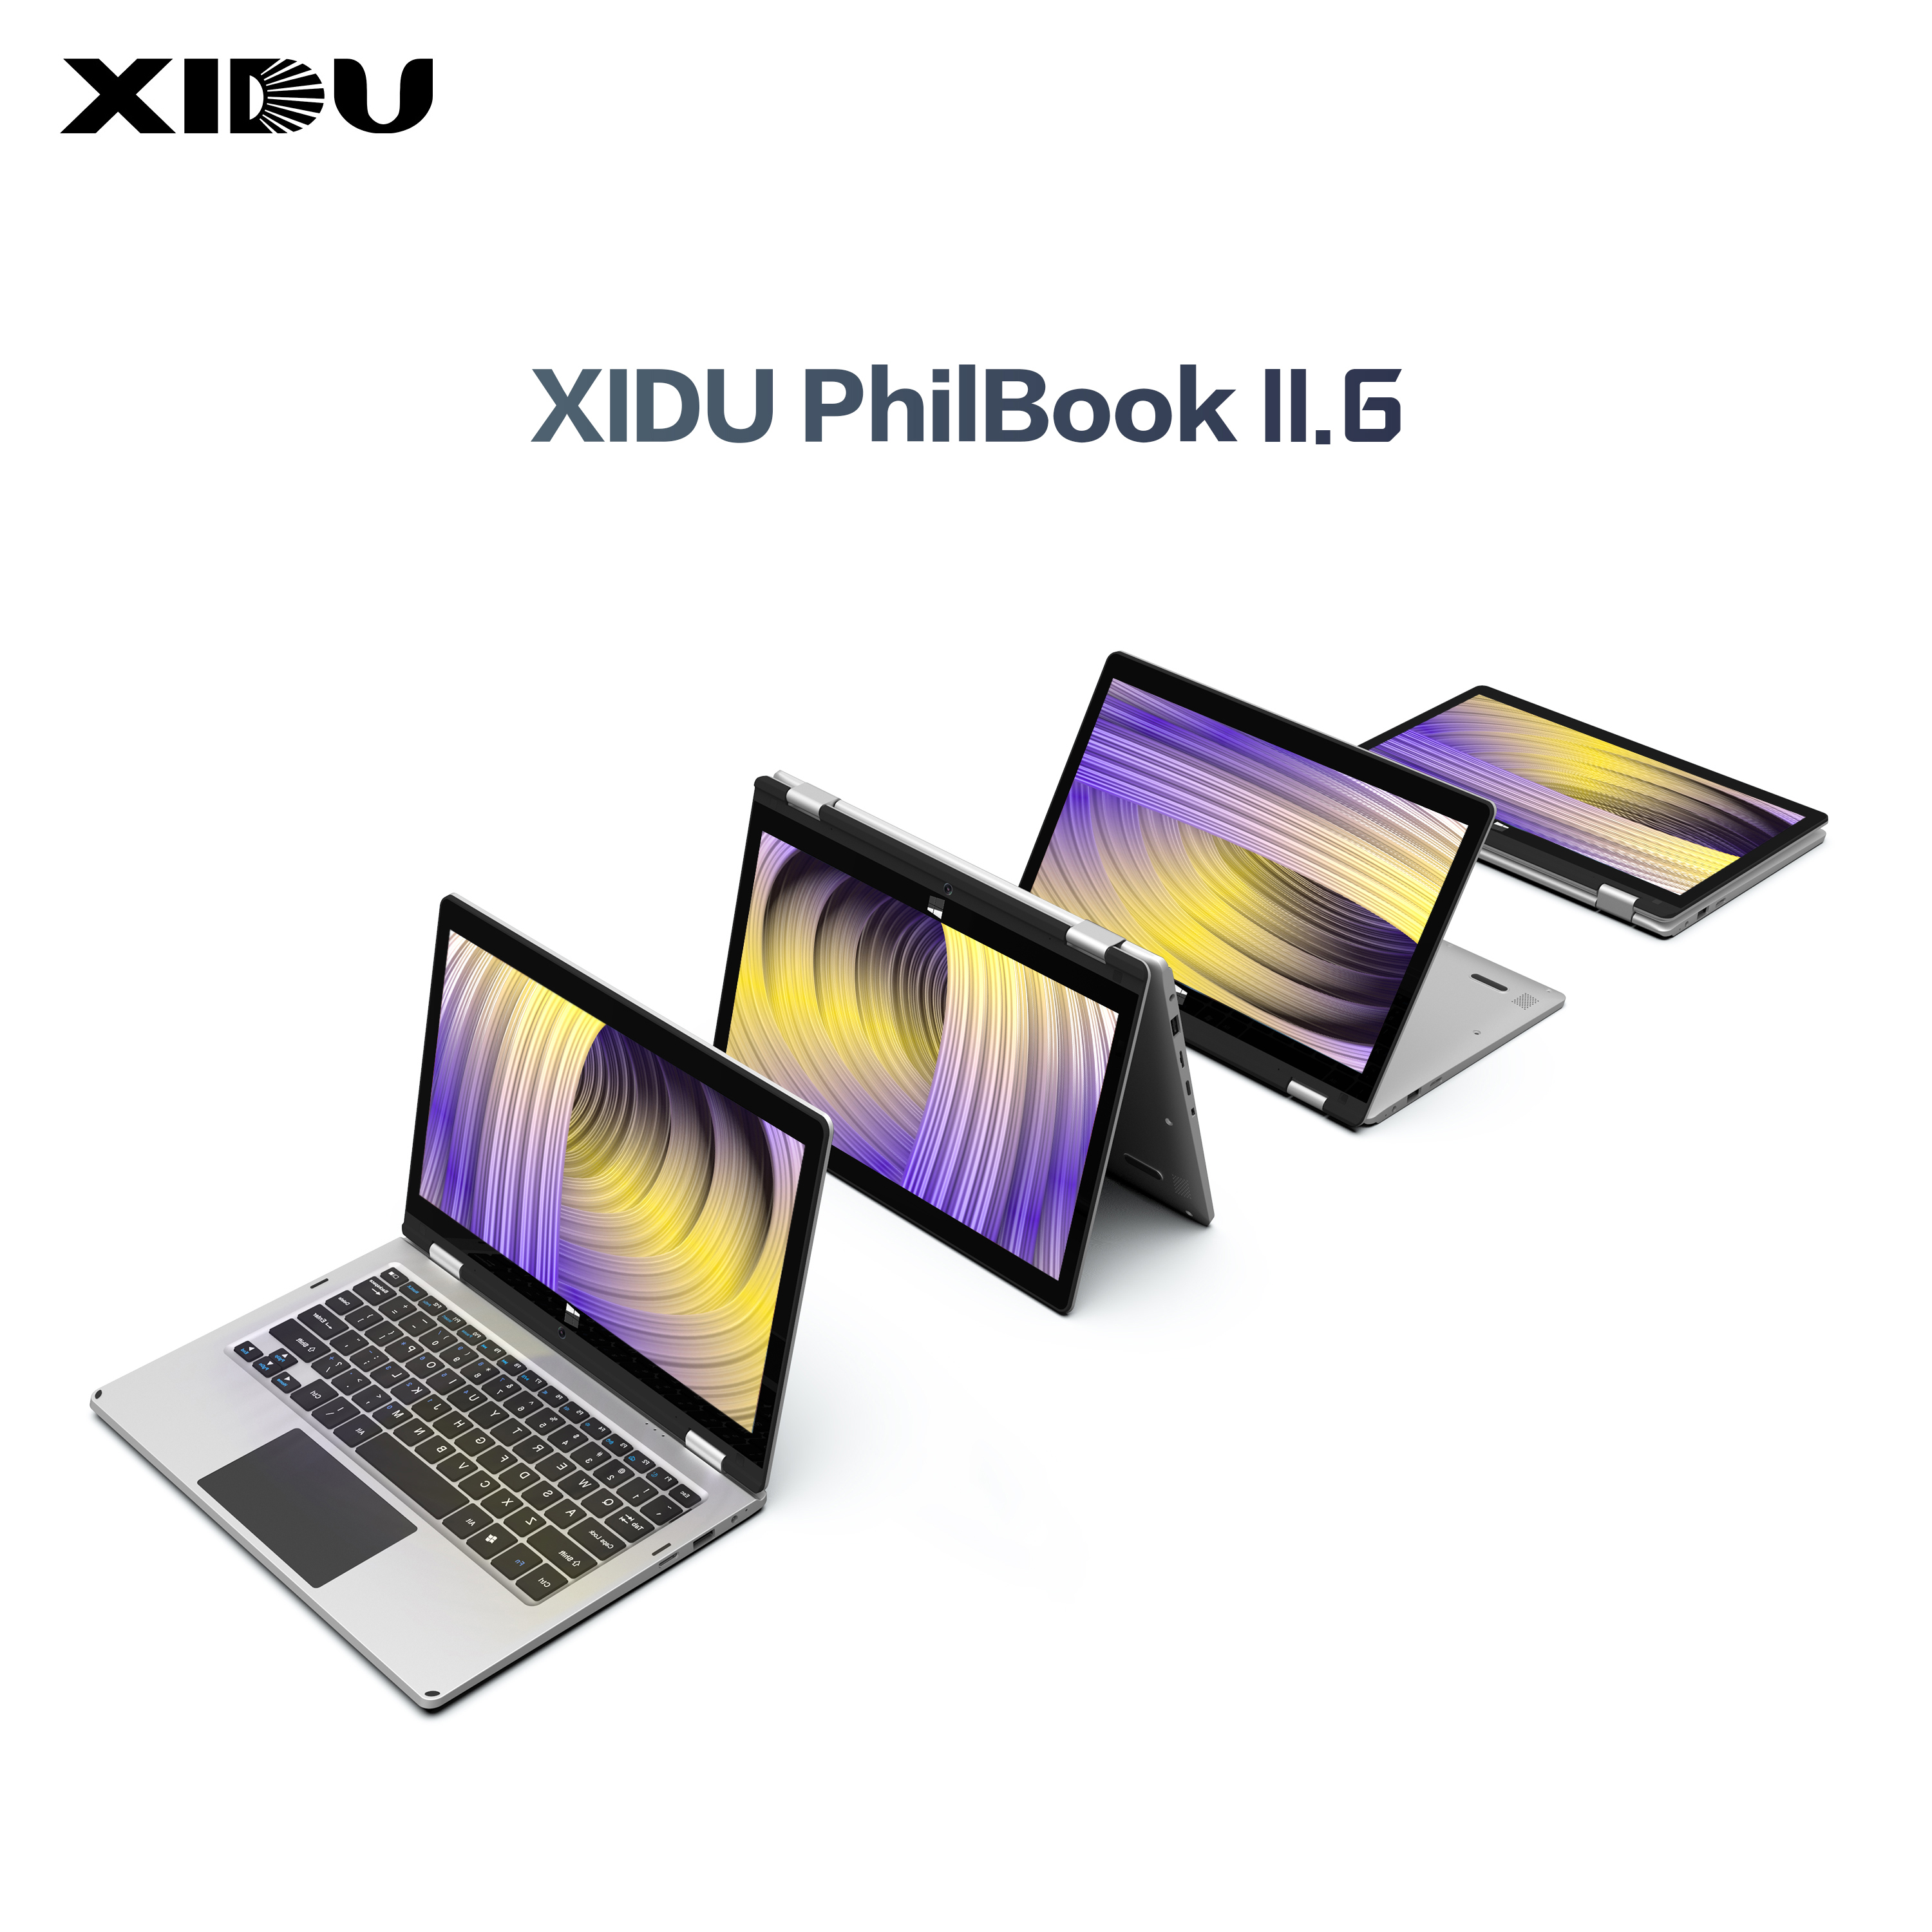 XIDU PhilBook 2-in-1 Convertible Laptop 11.6 Inch Tablet Ultra-slim Touchscreen Notebook With 1080 IPS Windows 10